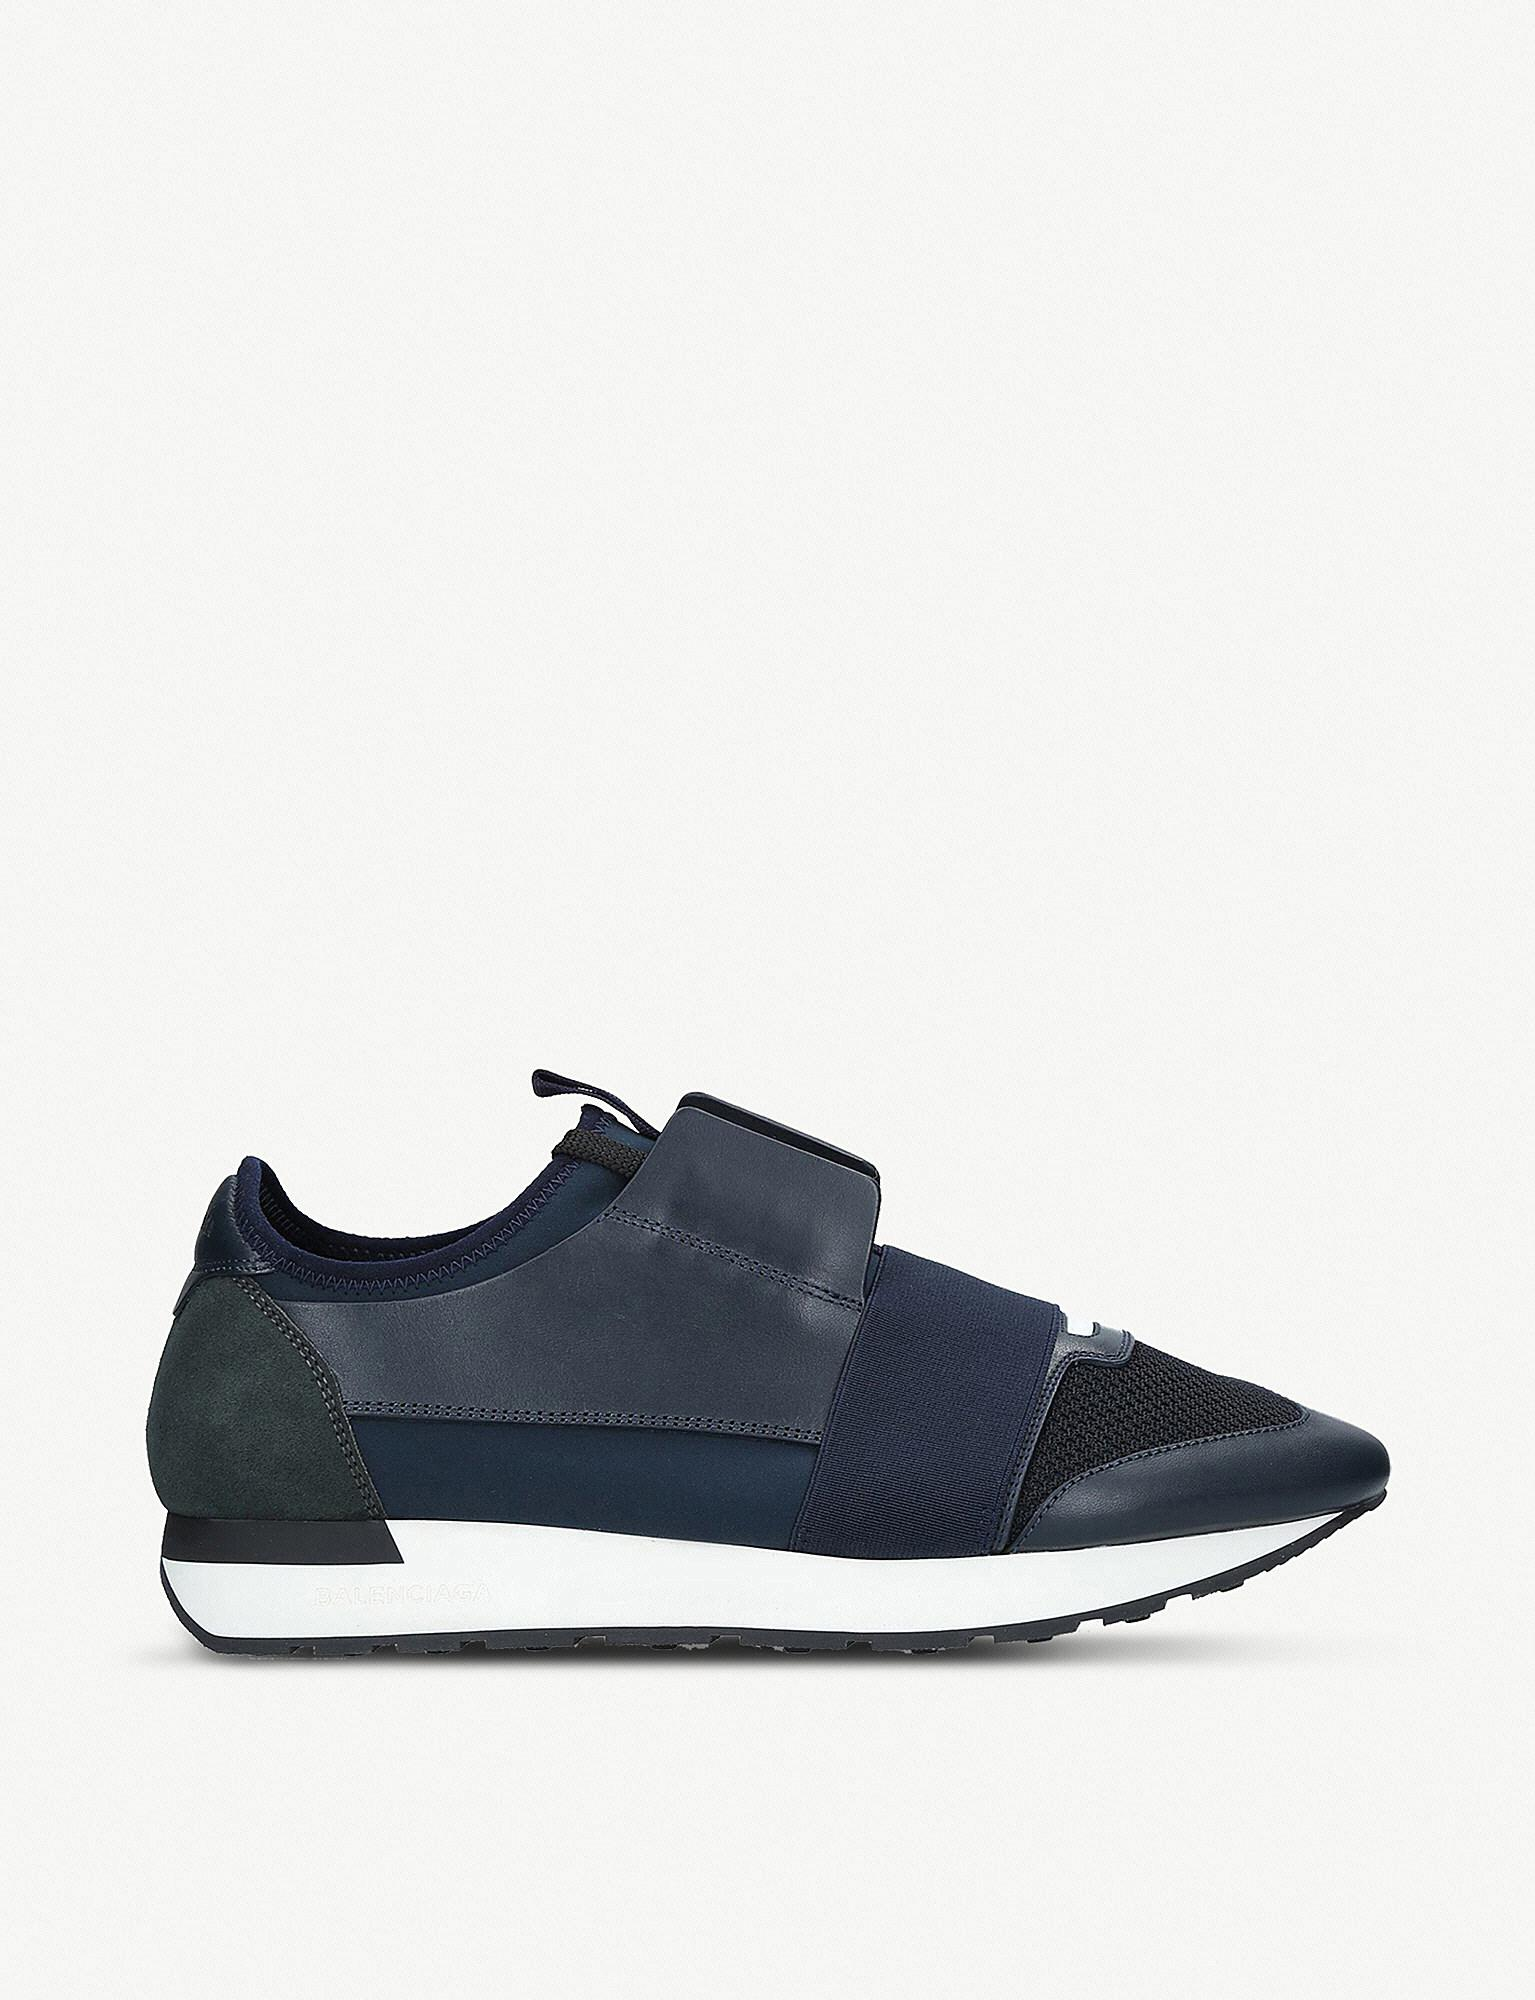 31974eed7405 Balenciaga Panelled Sneakers in Blue for Men - Lyst